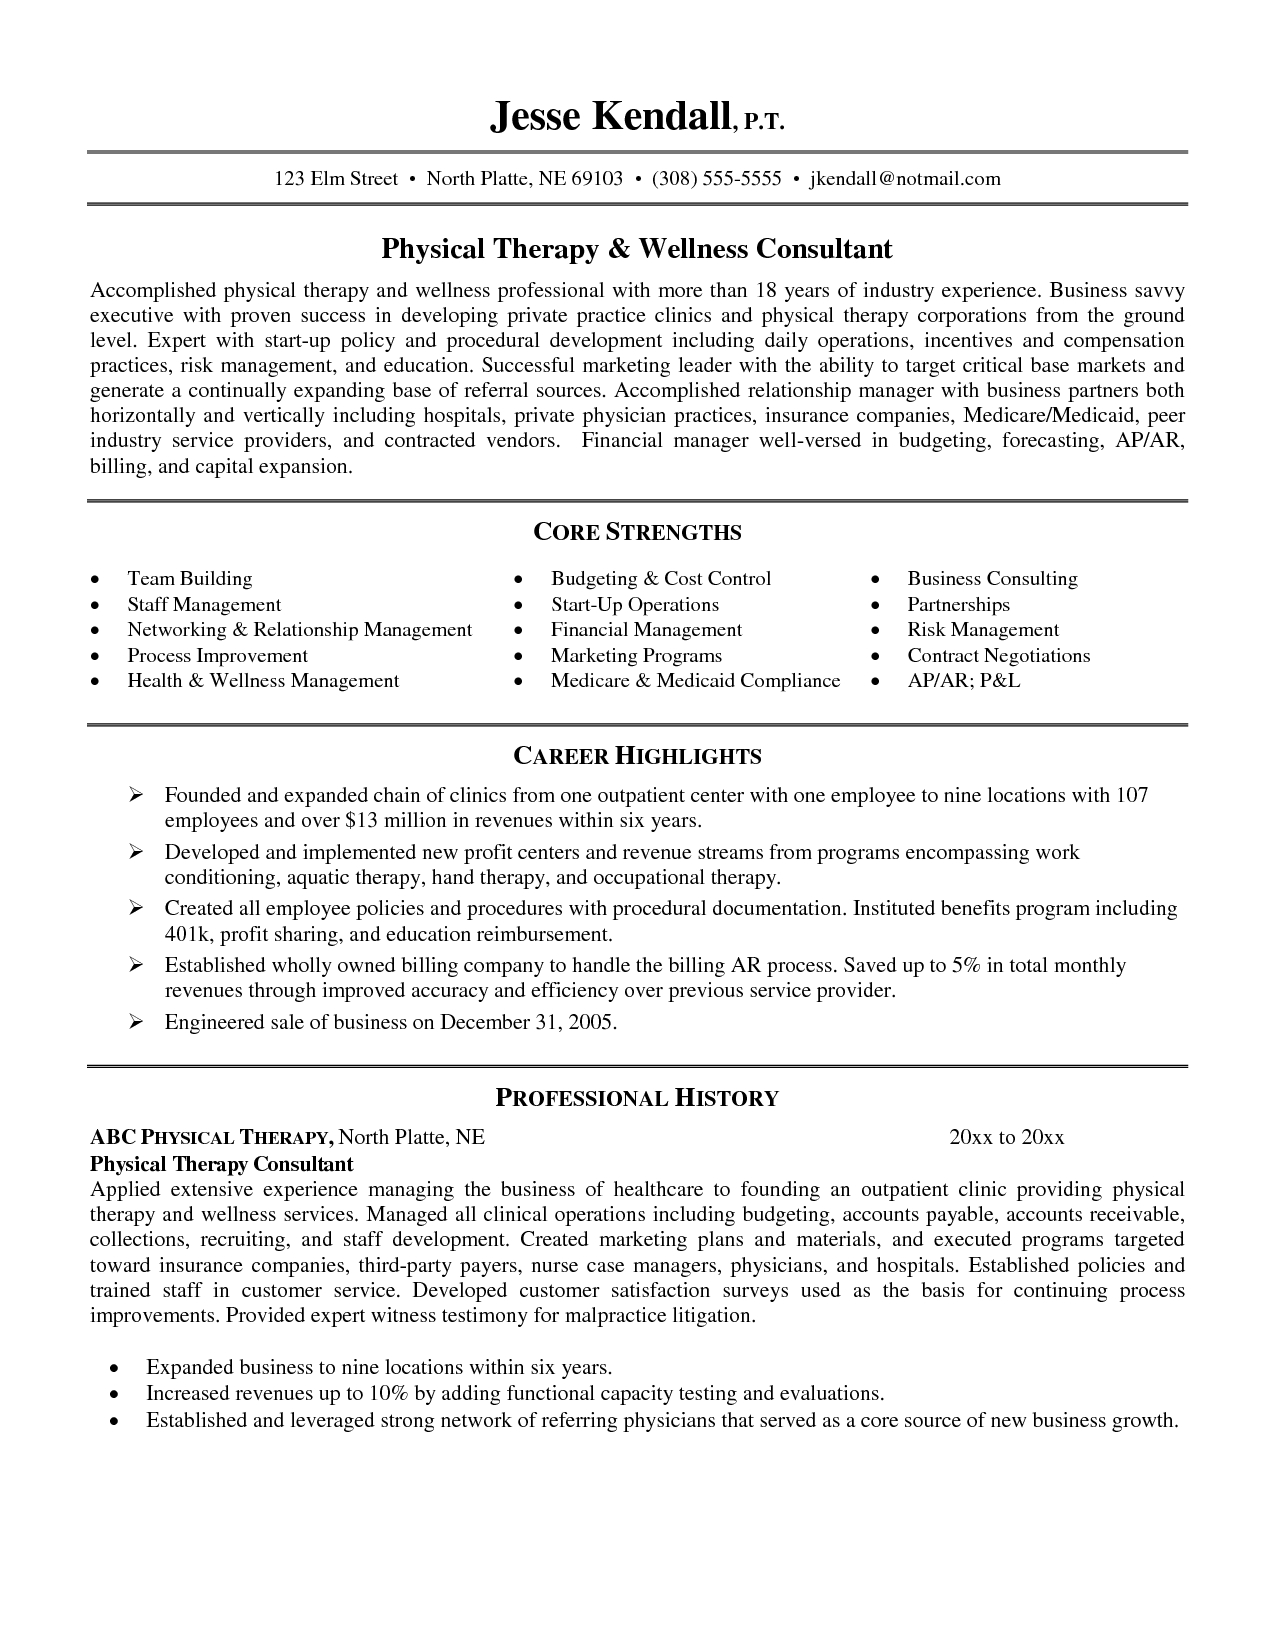 Physical Therapy School Resume Examples Sample Ot Resume Pta Cover Letter  Sample Resume Massage Therapist Resume  Massage Therapy Resumes